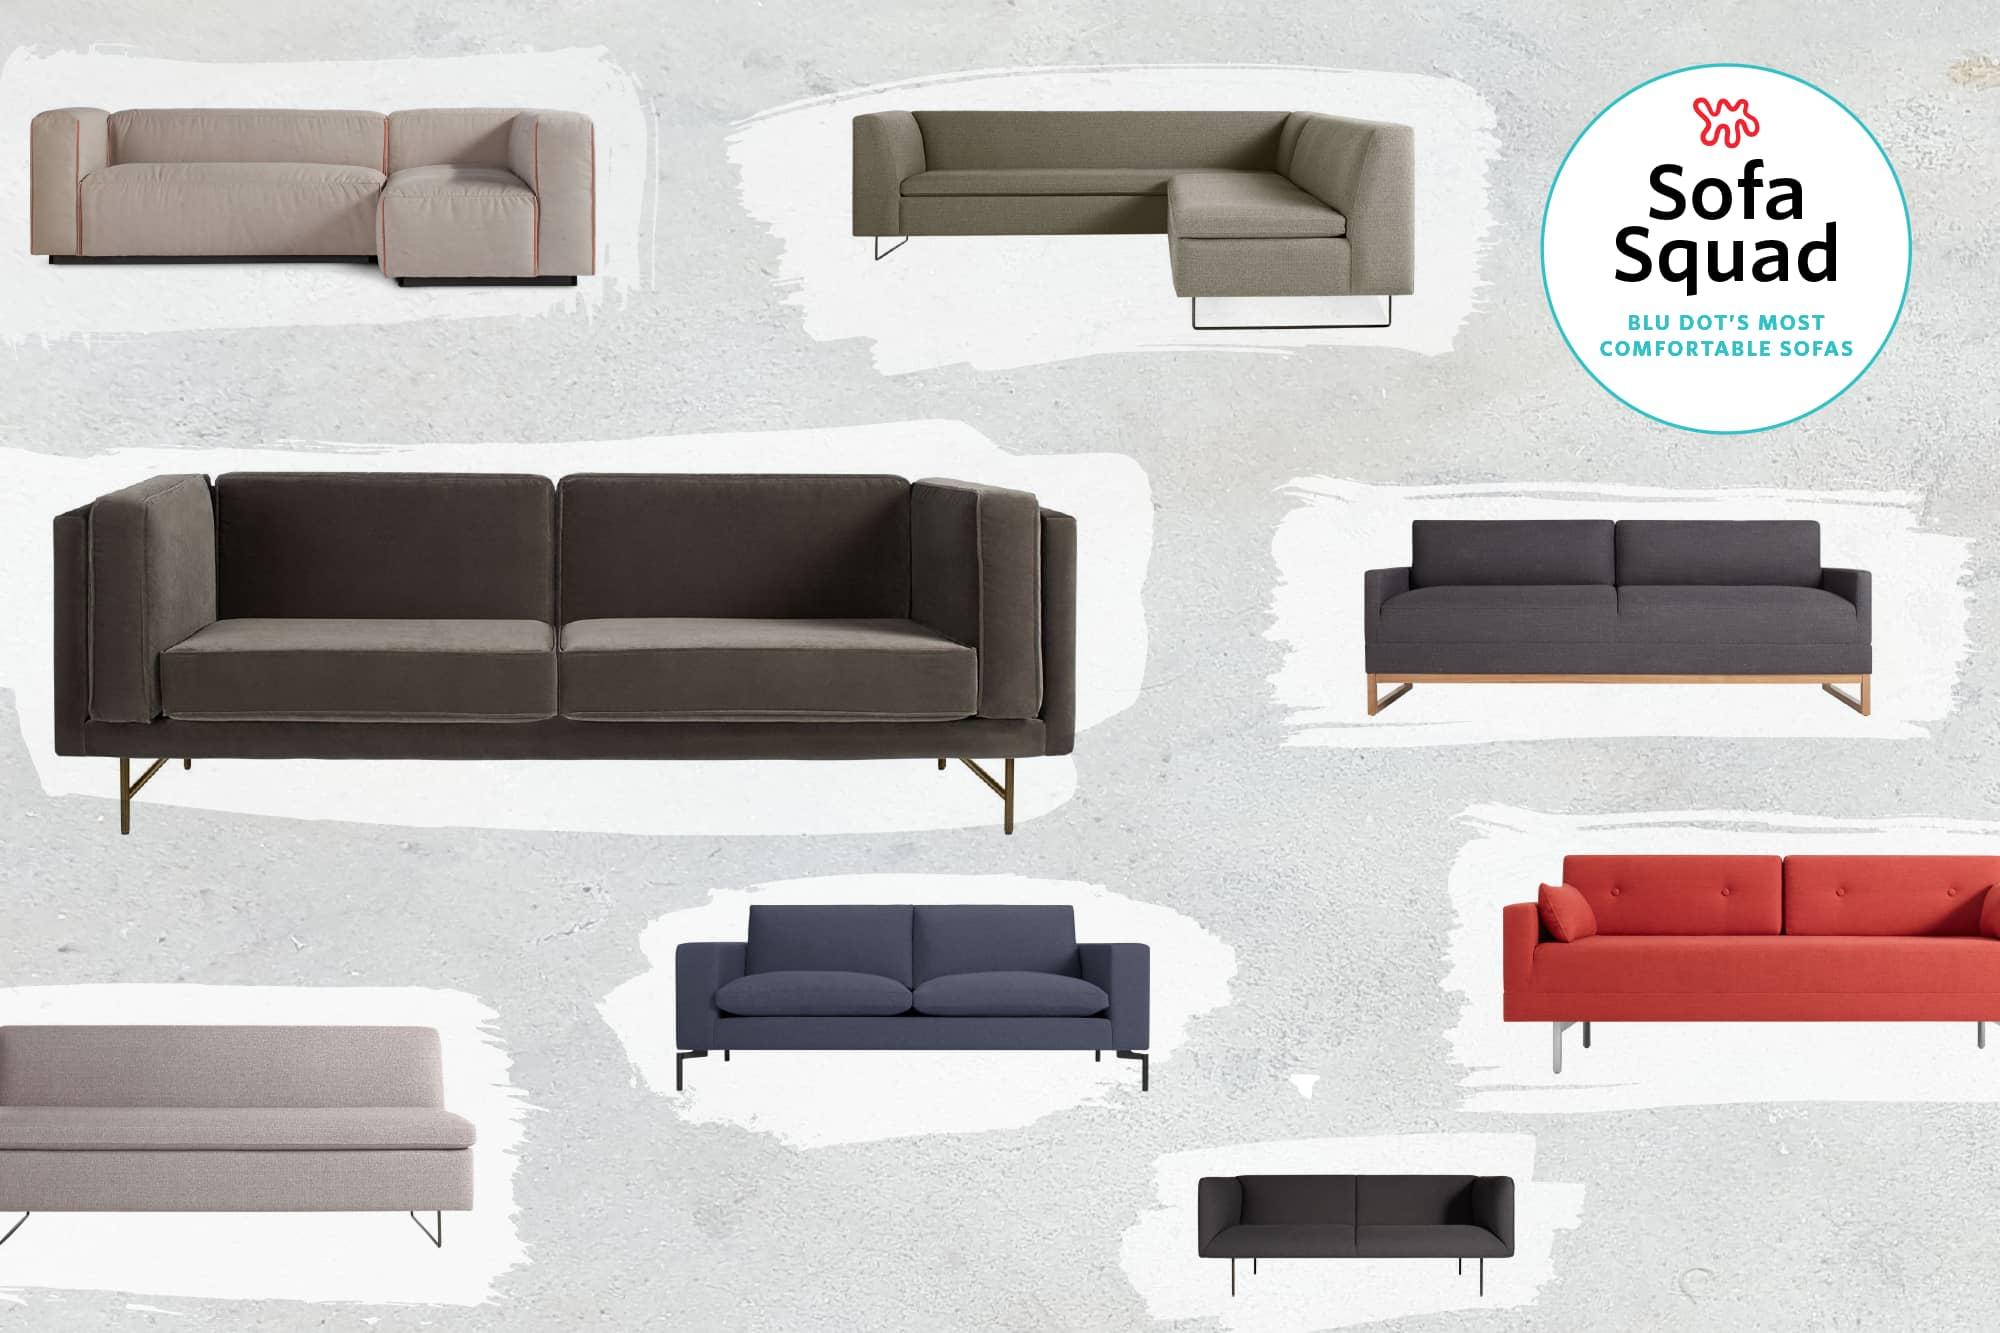 Reviewed: The Most Comfortable Sofas at Blu Dot | Apartment Therapy